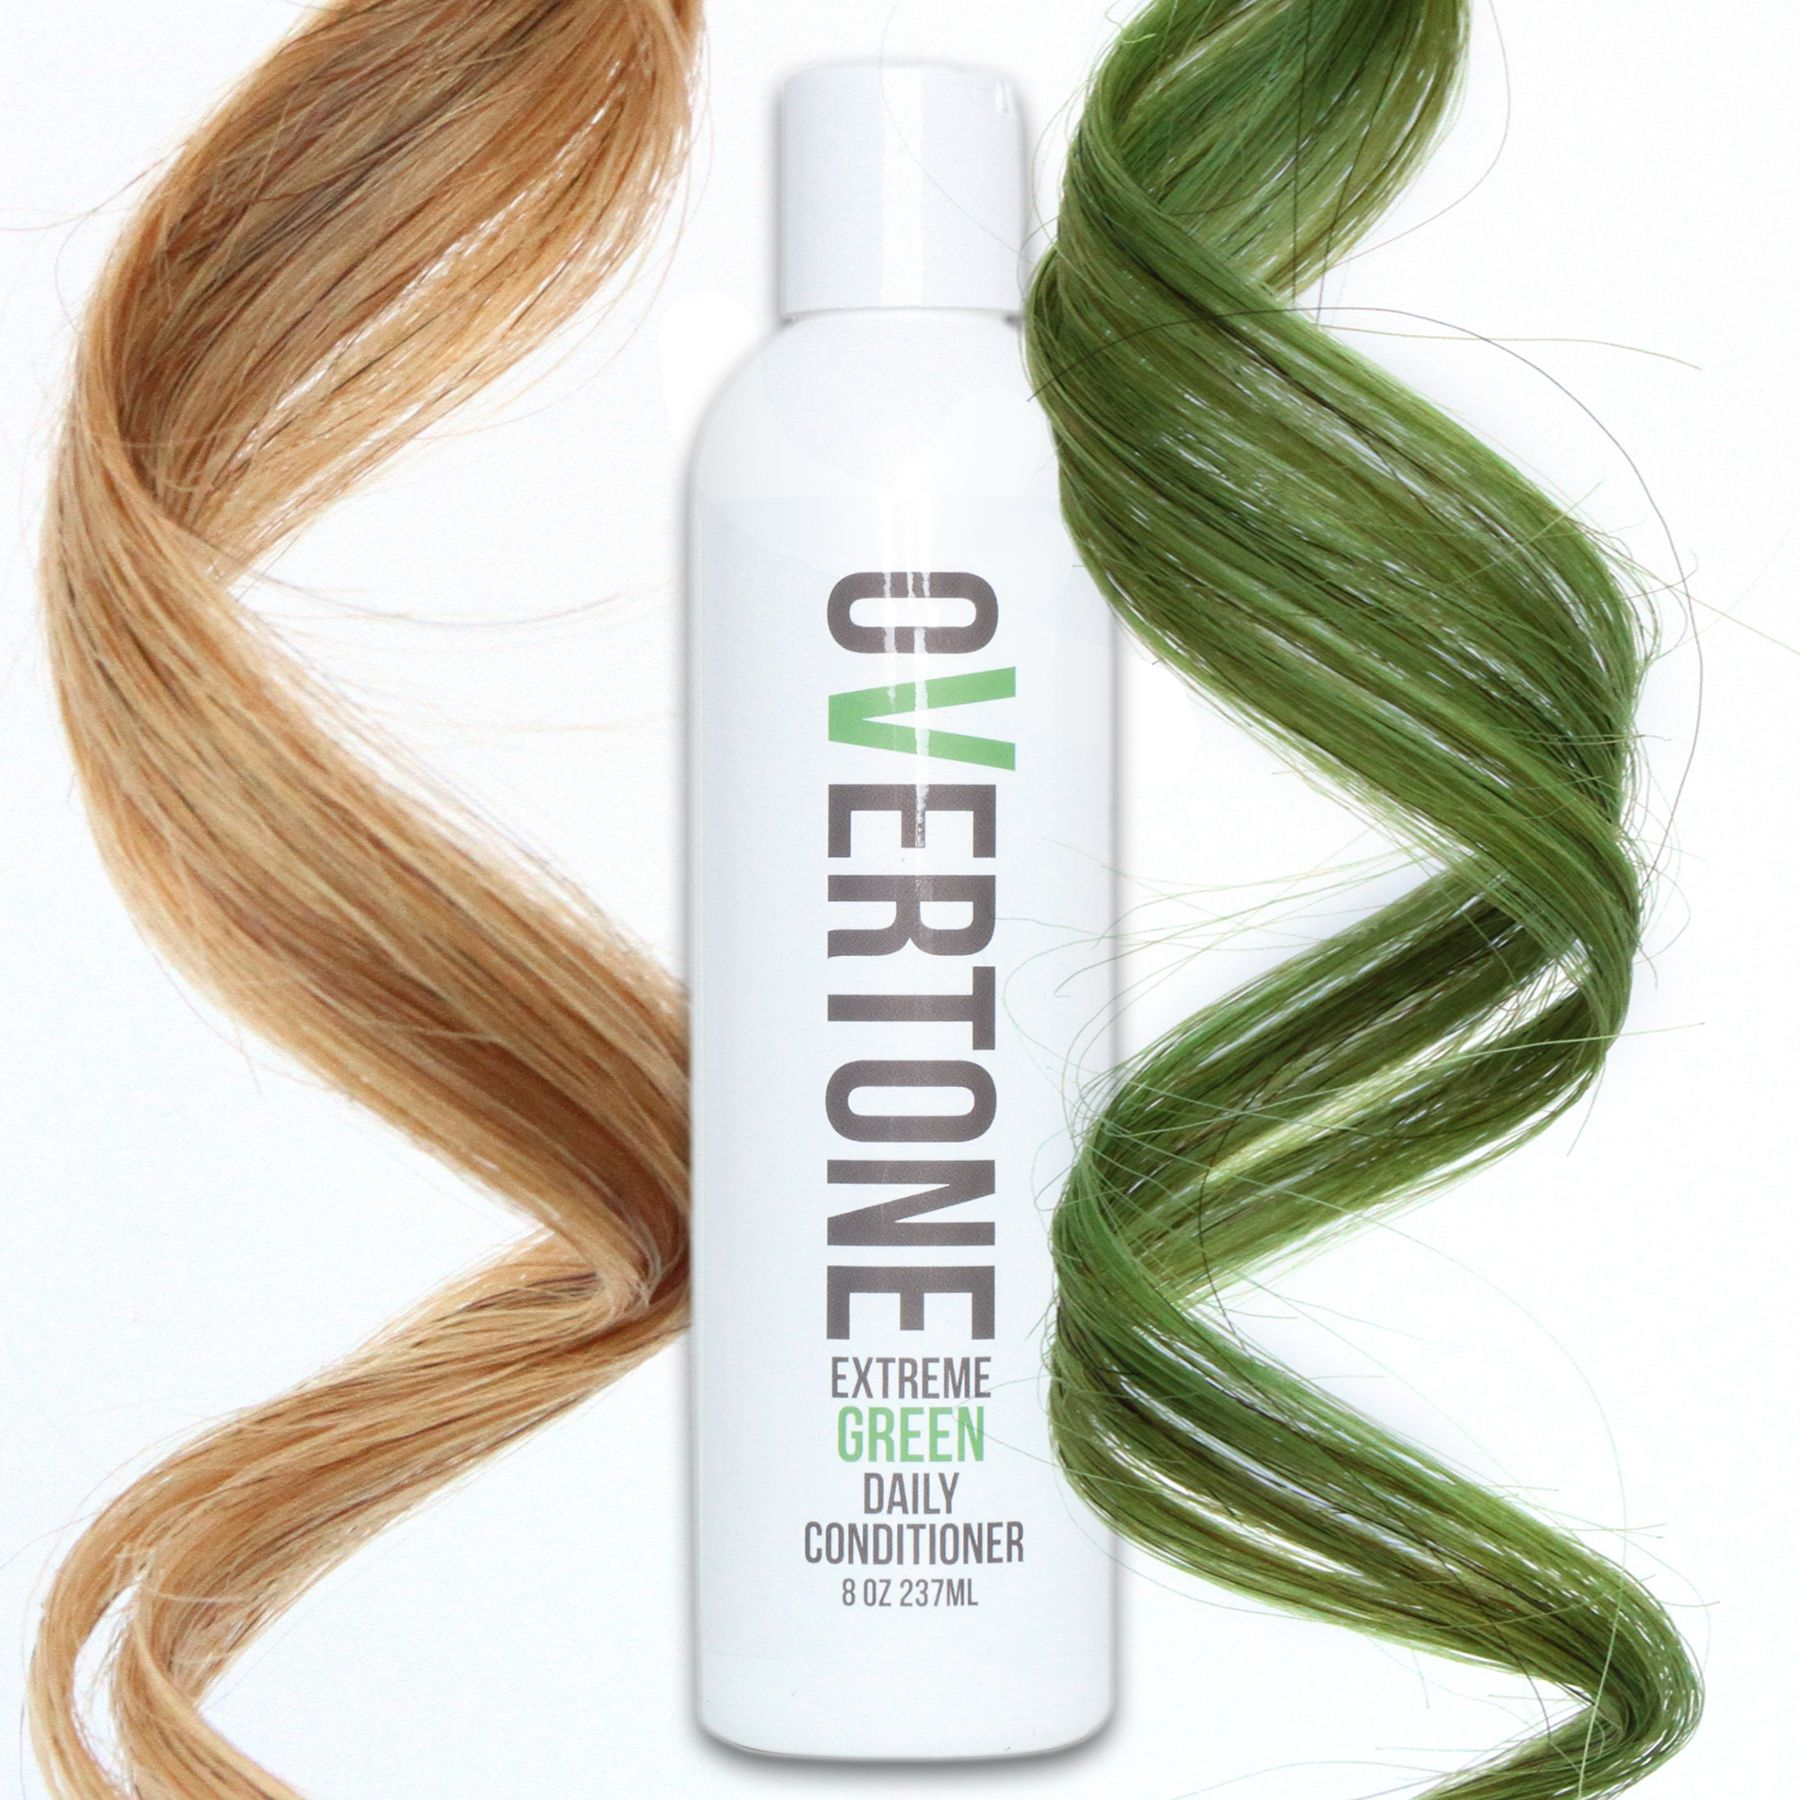 Extreme Green Daily Conditioner | Hair coloring, Green hair and Makeup